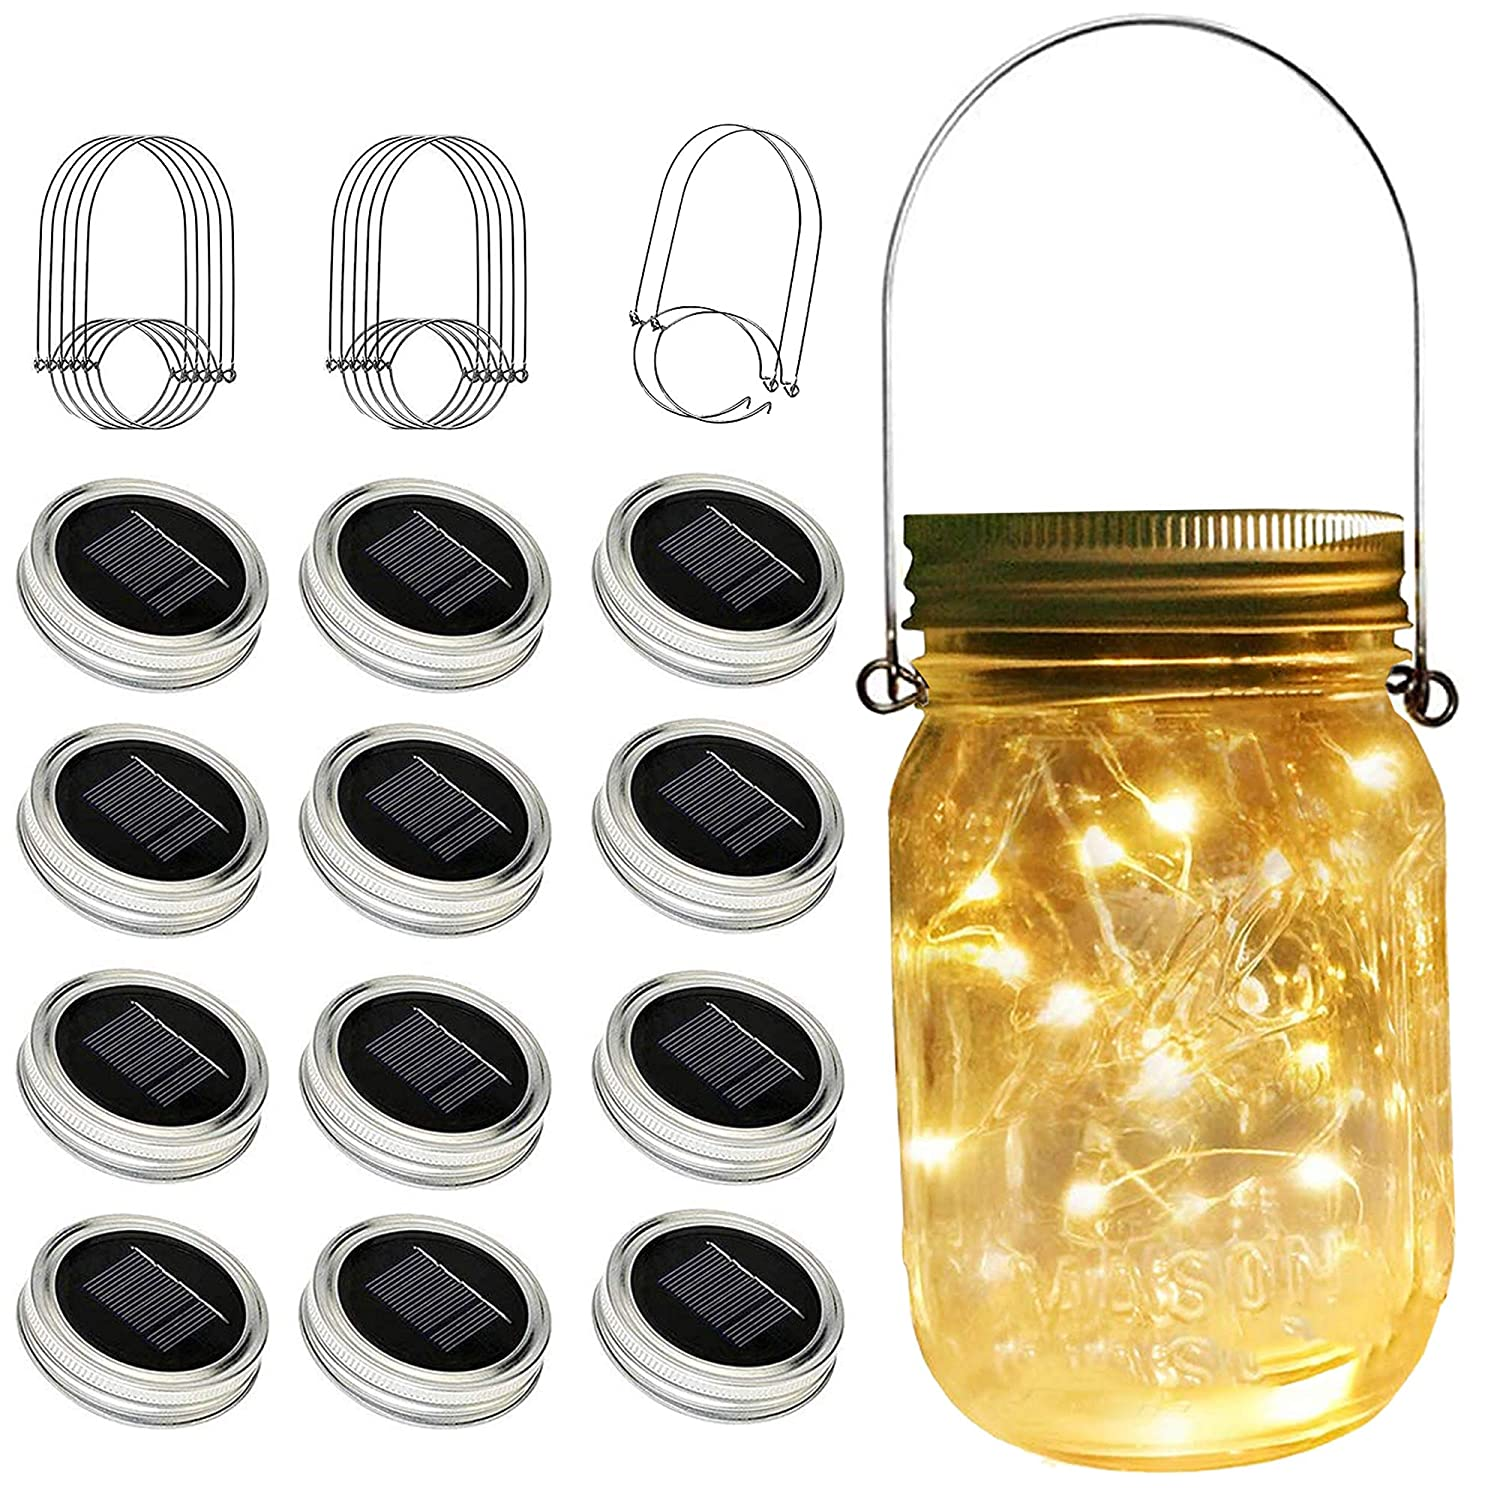 Solar Mason Jar Lights, 12 Pack 30 Led String Fairy Star Firefly Jar Lids Lights, (Jars Not Included), Best for Mason Jar Decor,Great Outdoor Lawn Decor for Patio Garden, Yard and Lawn.